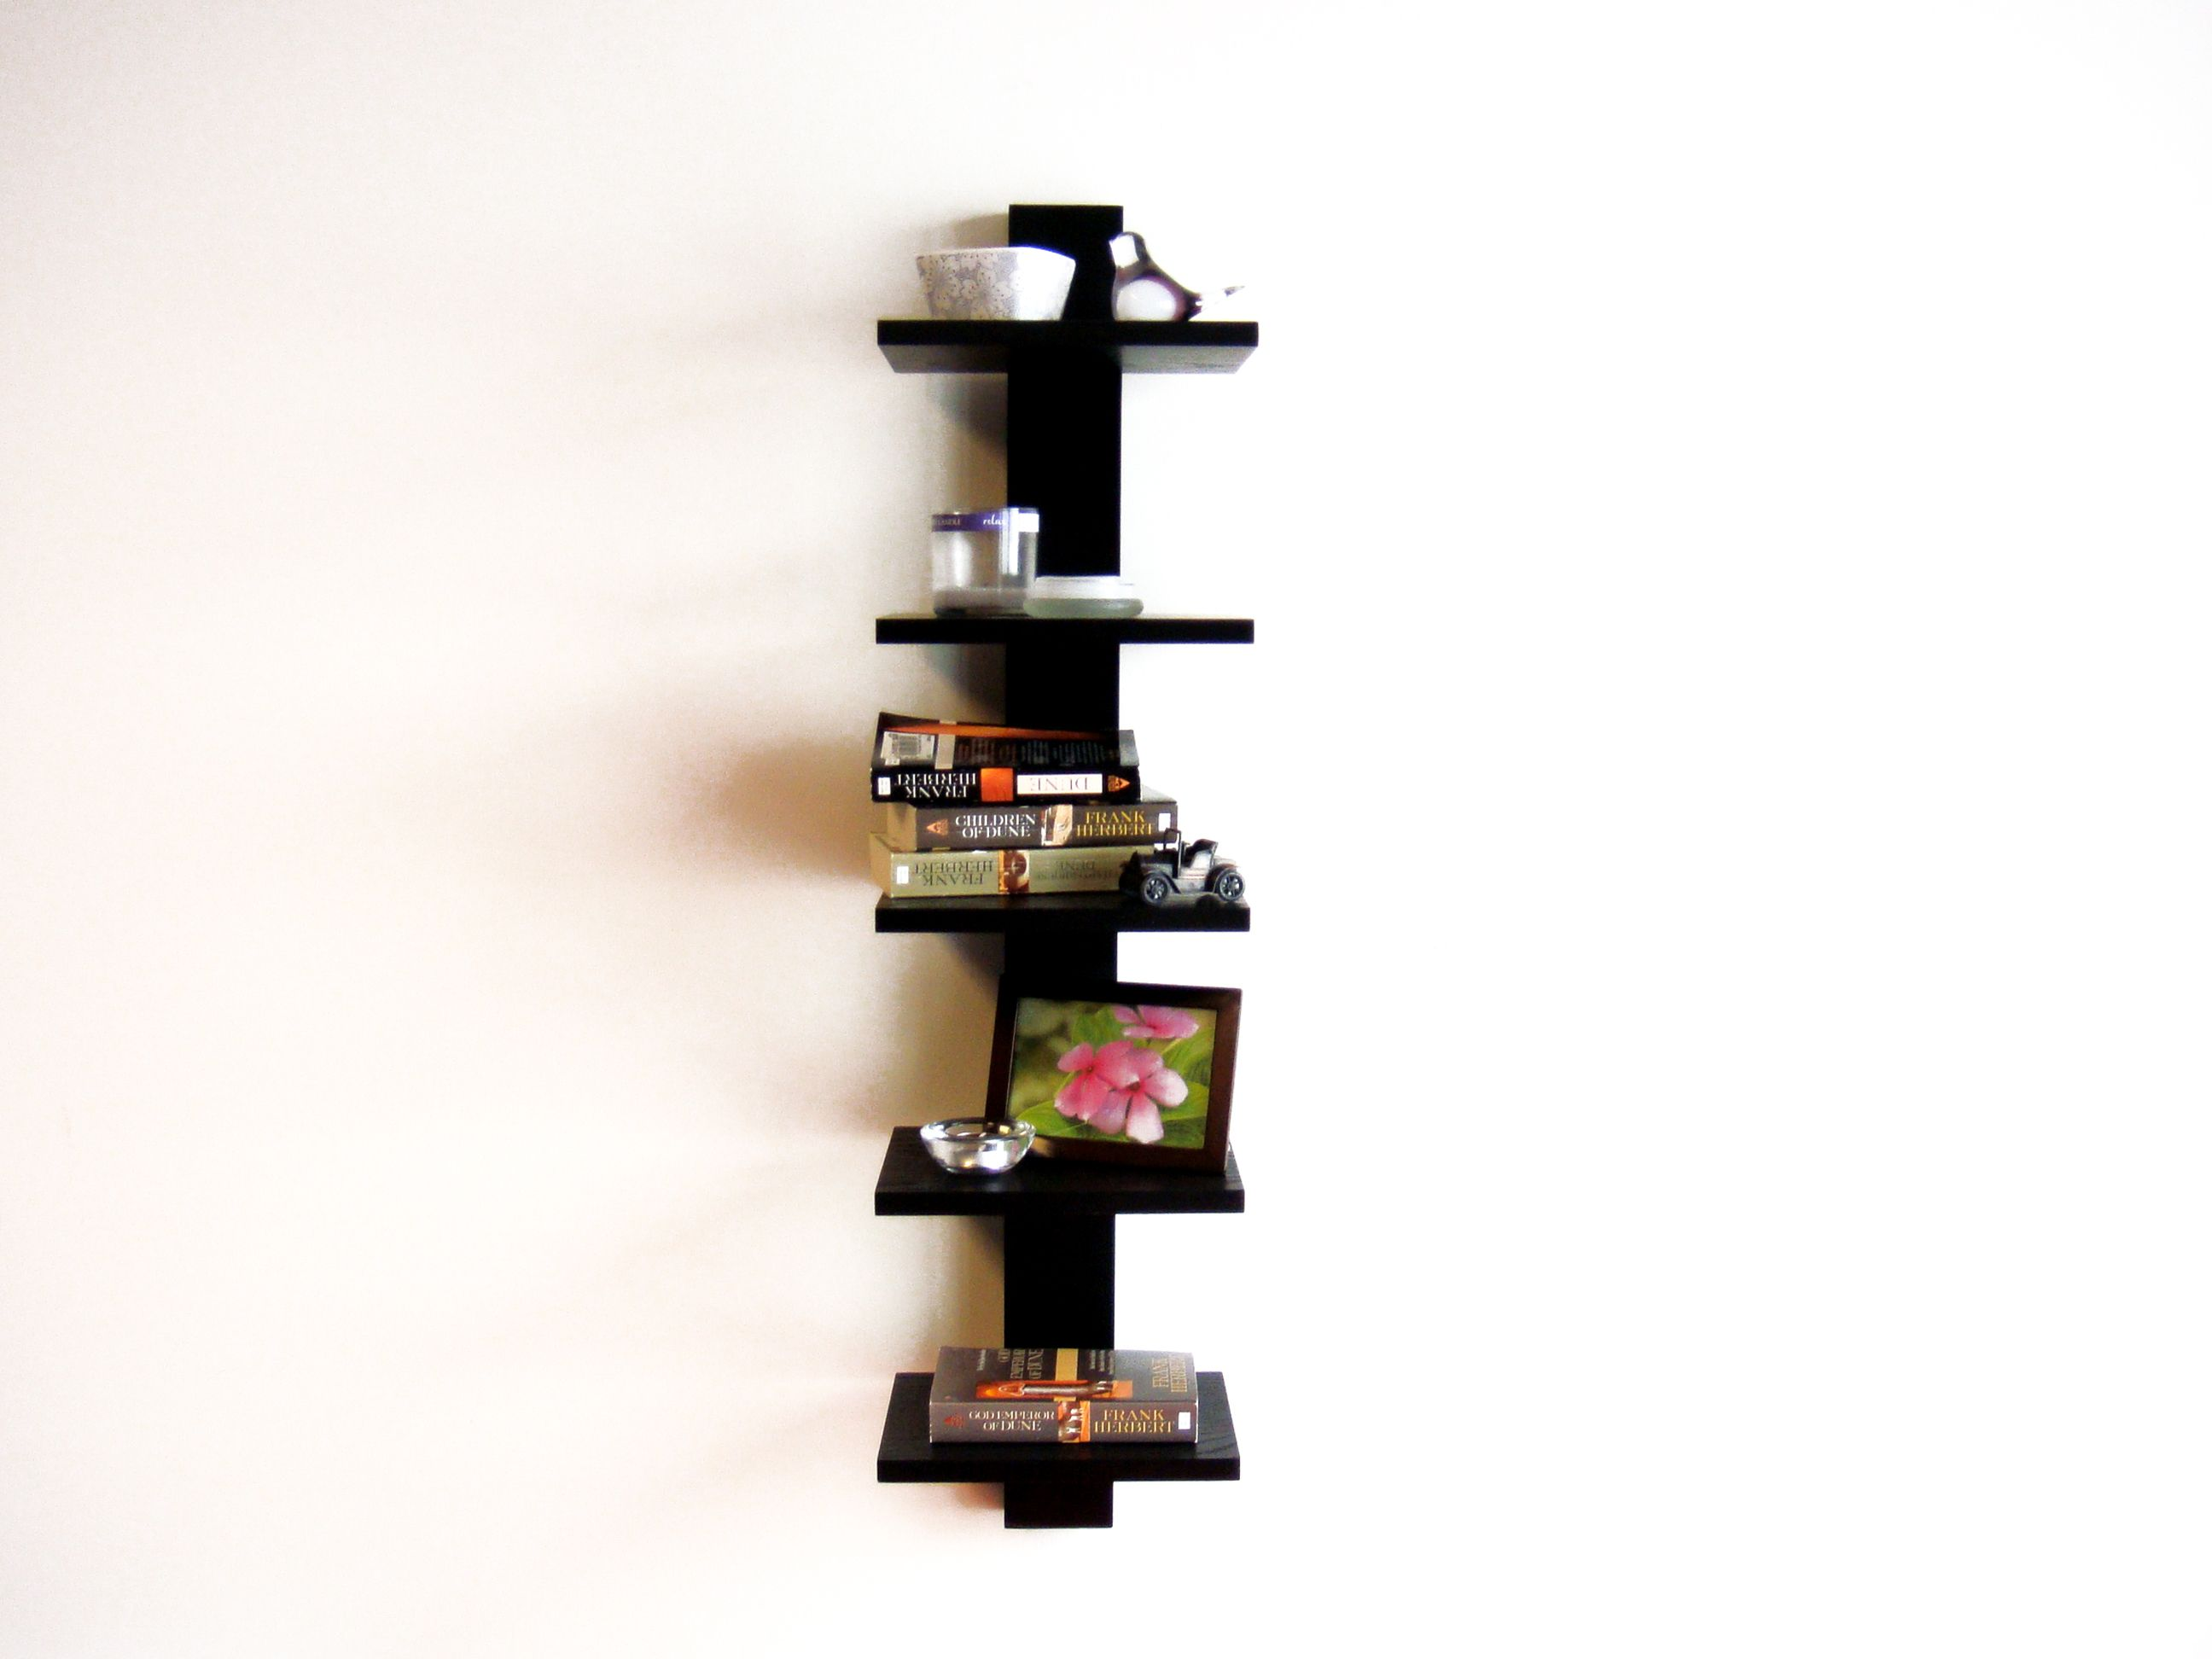 Spine Wall Book Shelves Black Proman Products Pp Wm16565 Wall